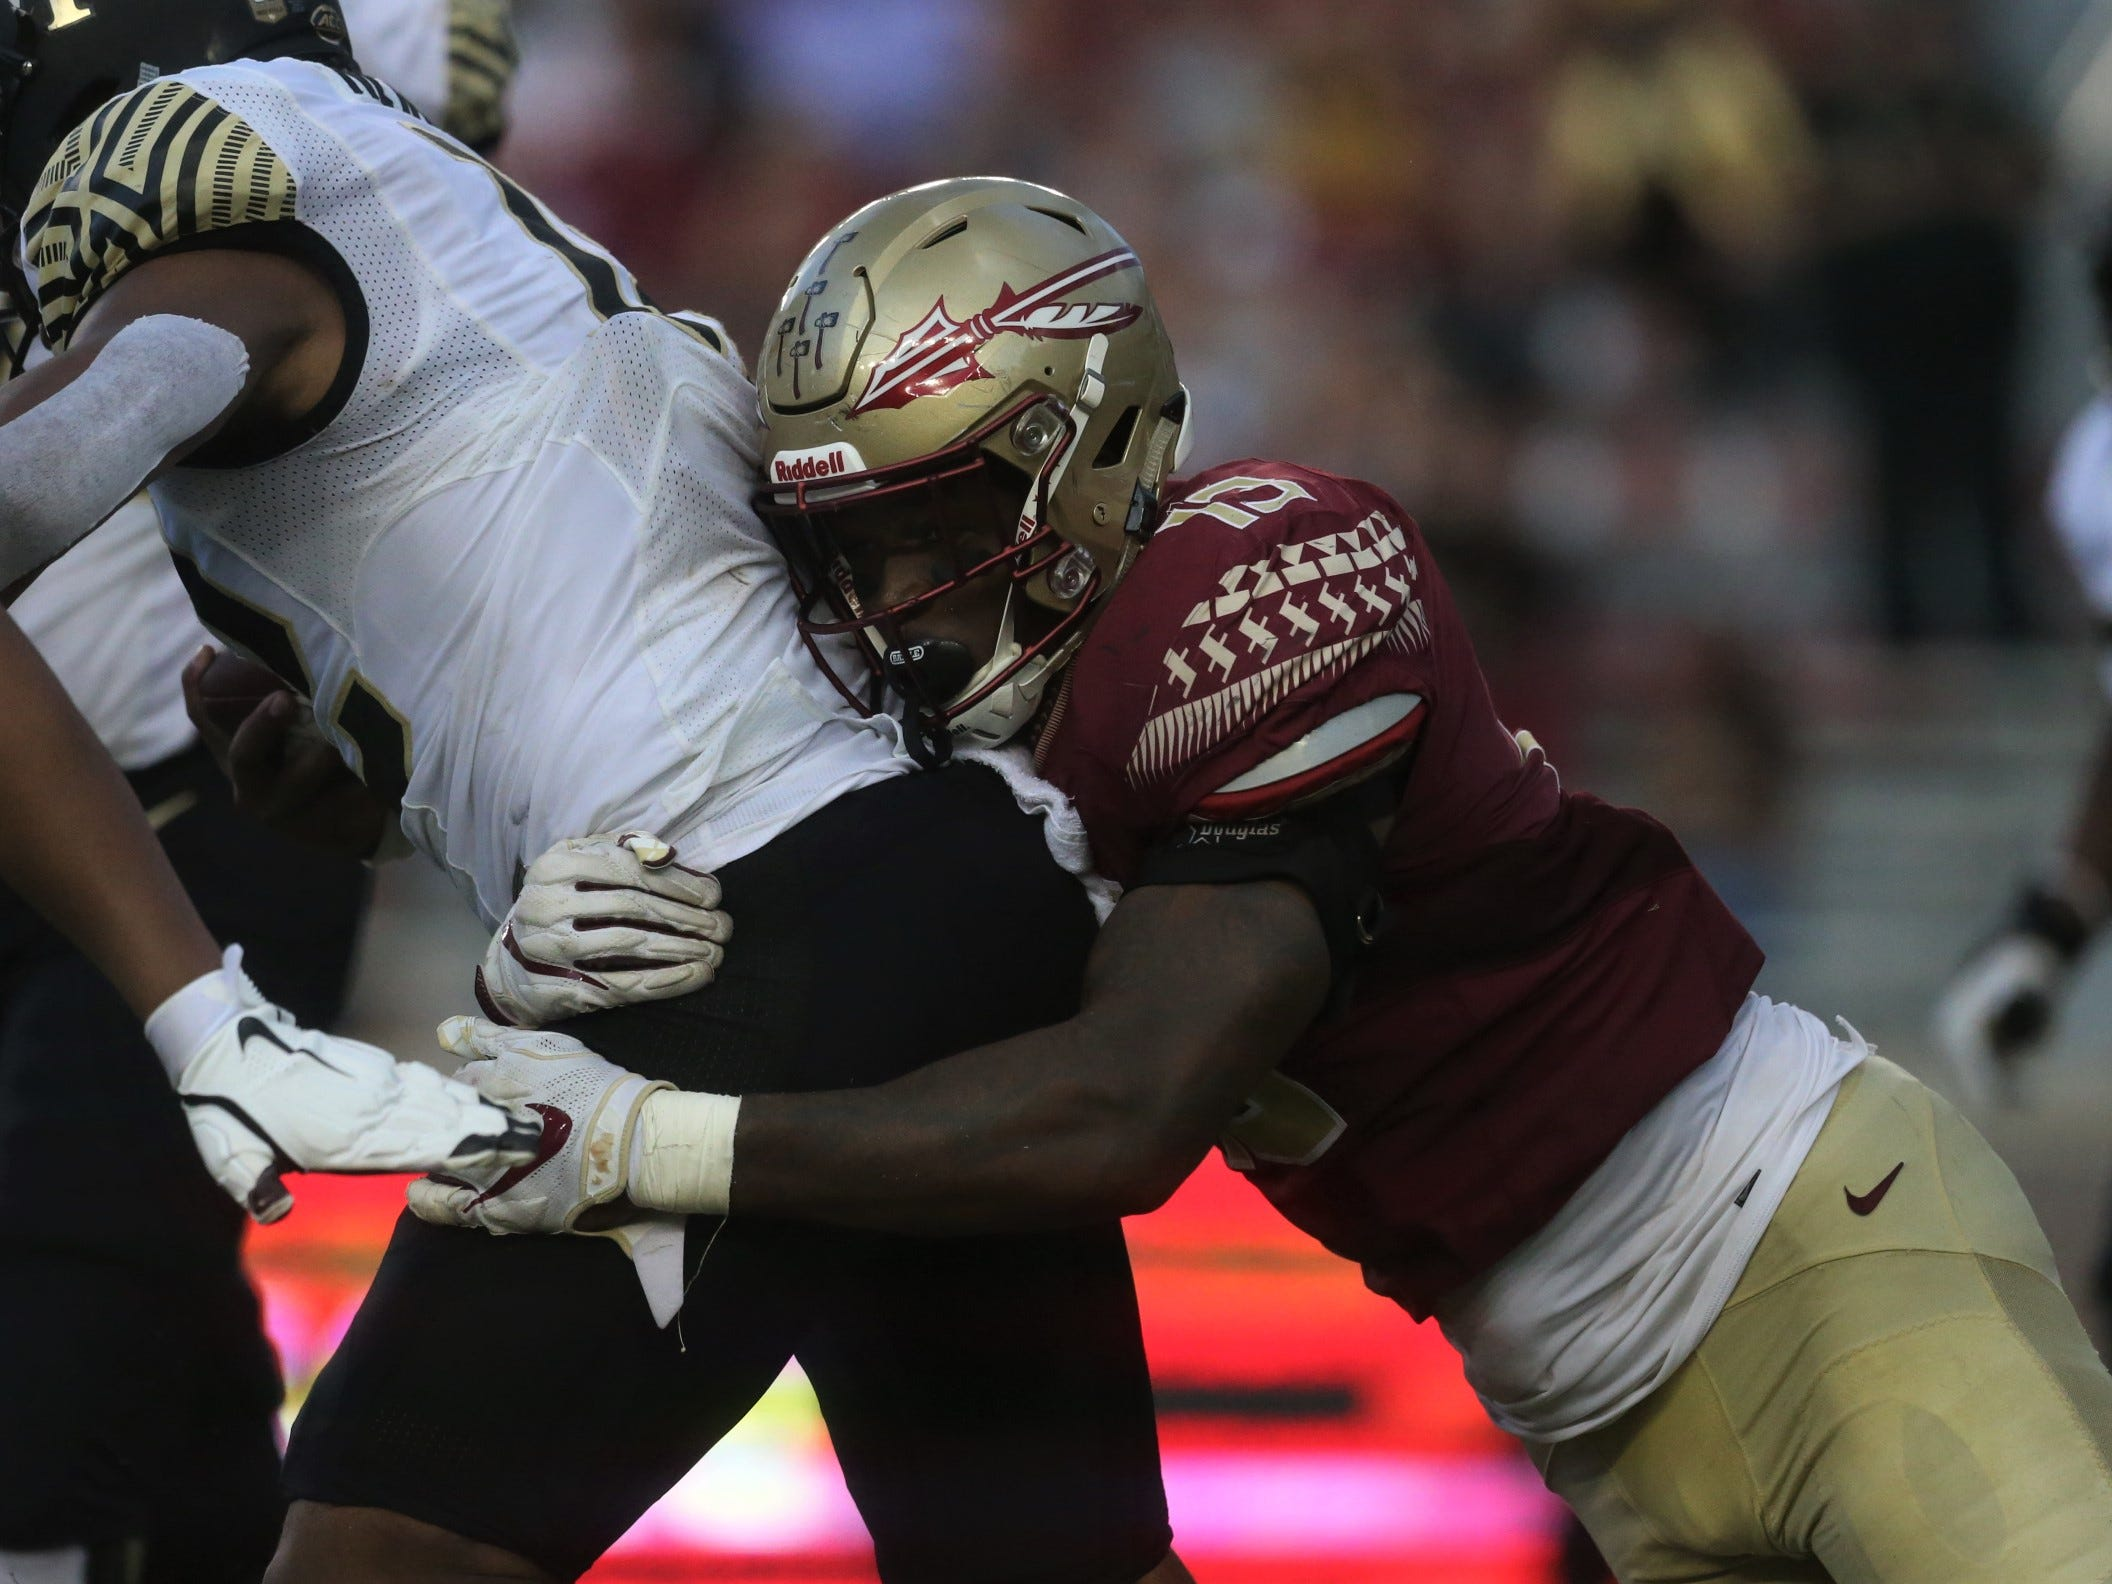 Florida State defensive end Joshua Kaindoh record a sack of Wake Forest quarterback Jamie Newman during a game at Doak Campbell Stadium on Saturday, Oct. 20, 2018.